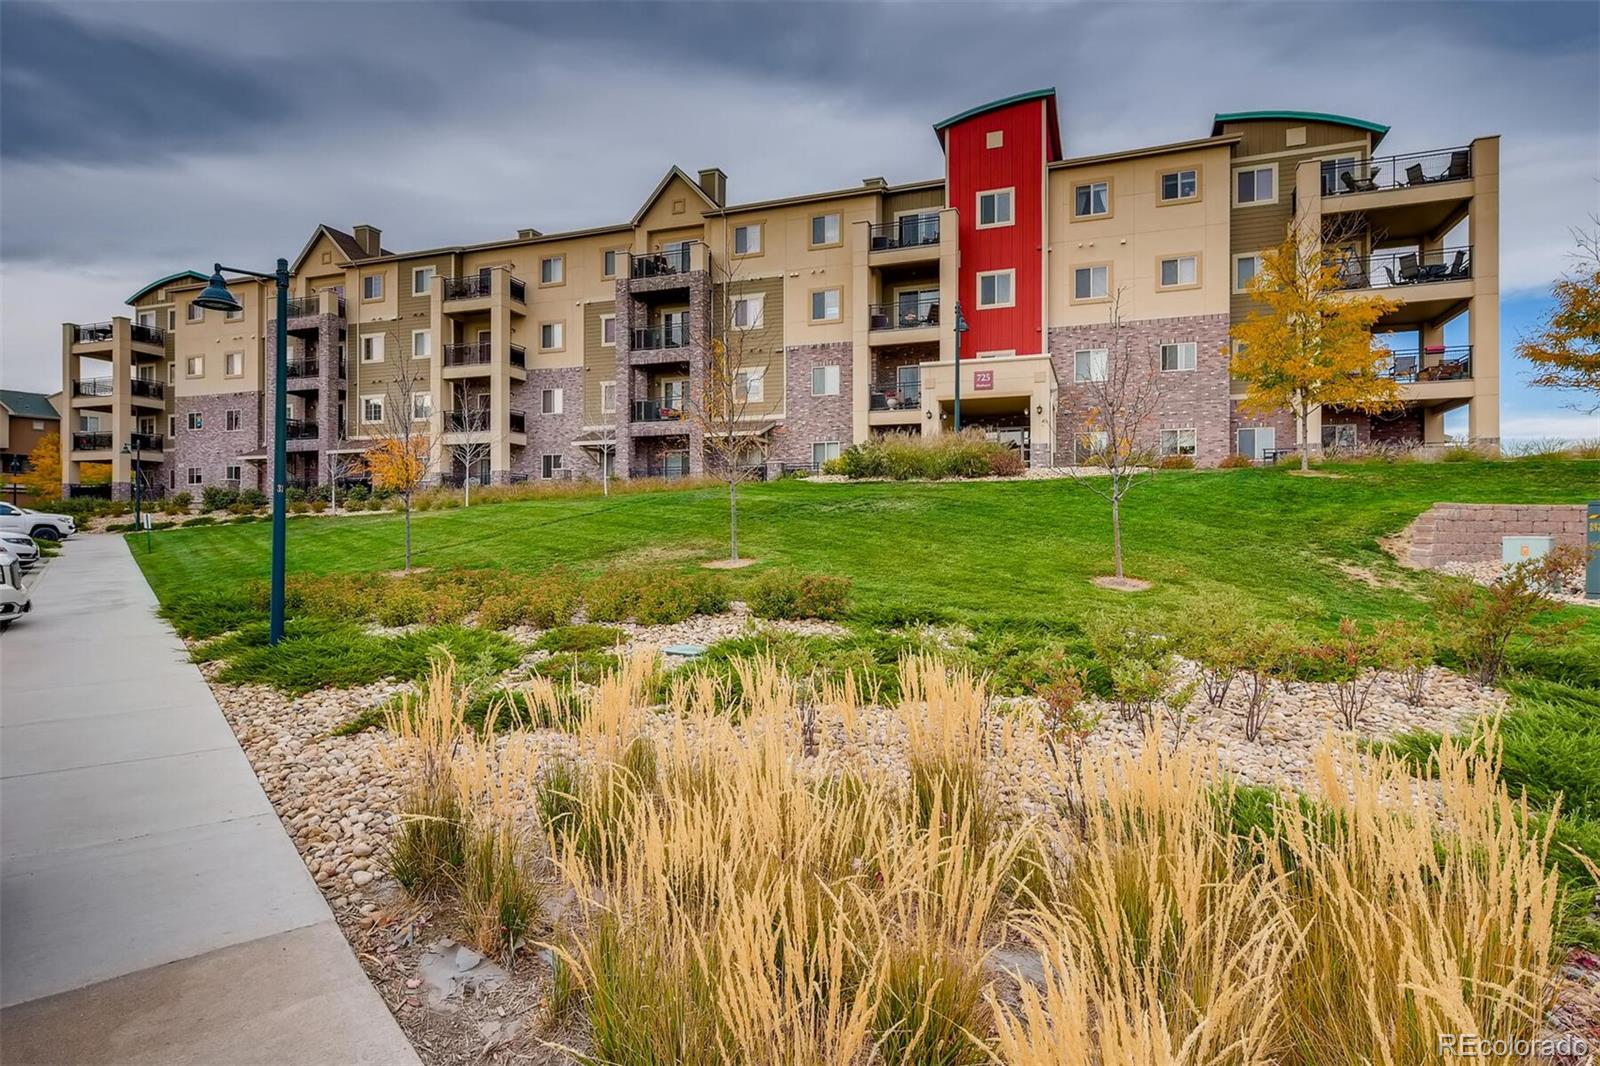 Spacious low maintenance two bedroom condo in the heart of Highlands Ranch at Town Center offers walkability to beautiful Civic Green Park, retail shops, restaurants and the local library. This bright and open floor plan features a gas fireplace to keep you warm during those cold winter evenings, abundant seating at the kitchen island, additional space for a dining table, in unit washer and dryer and two large bedrooms. The main bedroom has its own ensuite bathroom and large closet. Entertaining is easy with the double slider doors providing access to the outdoor patio with ample room for a grill and patio furniture. The back patio overlooks a nice little green space, and even has peek a boo mountain views! This well maintained main floor unit offers the convenience of no stairs to access your home. Enjoy all that the four Highlands Ranch Recreation Centers have to offer with your monthly HOA dues!